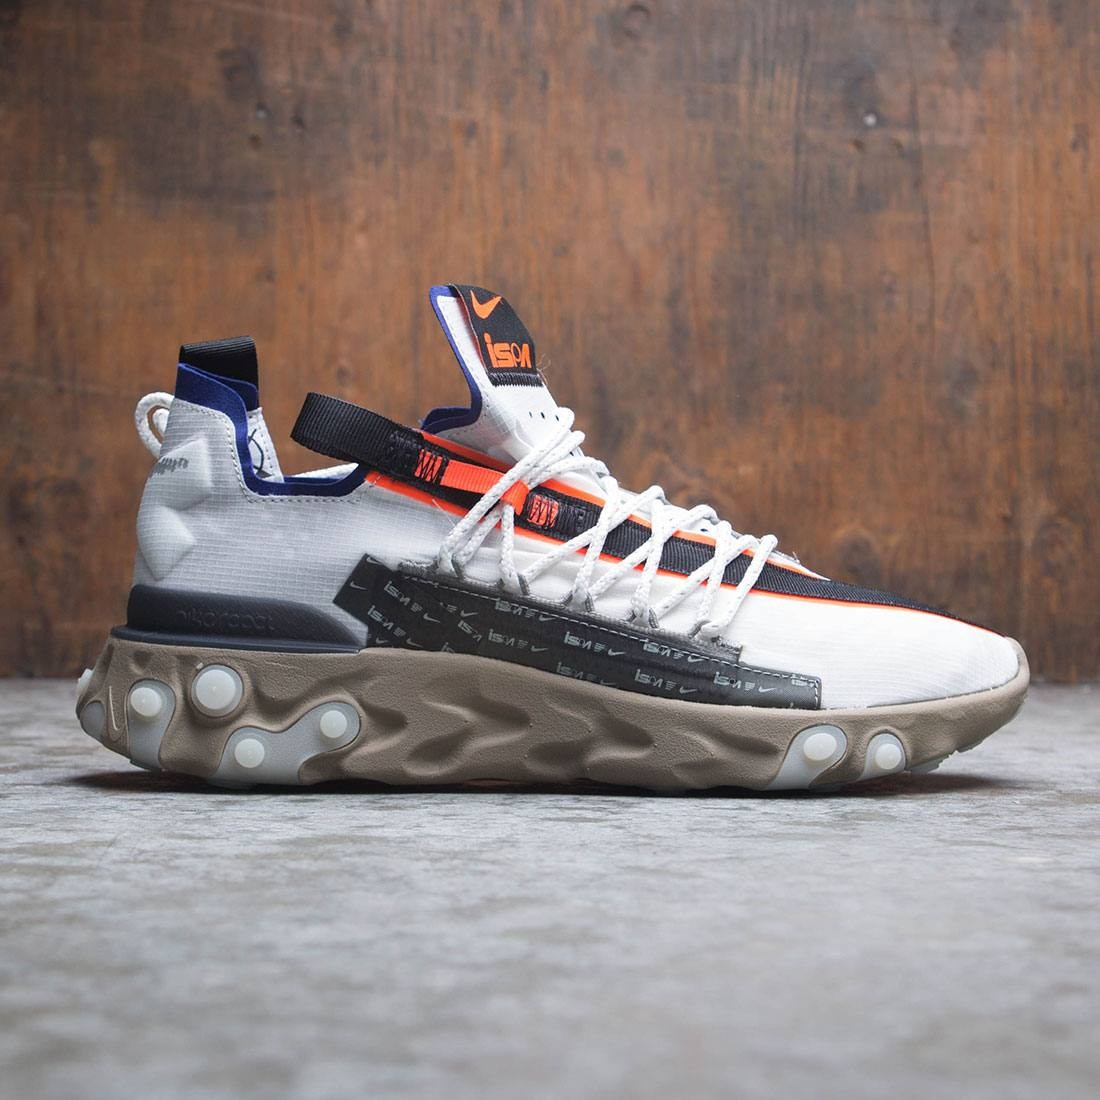 Nike Men Ispa React Wr (summit white / deep royal blue-khaki-black)